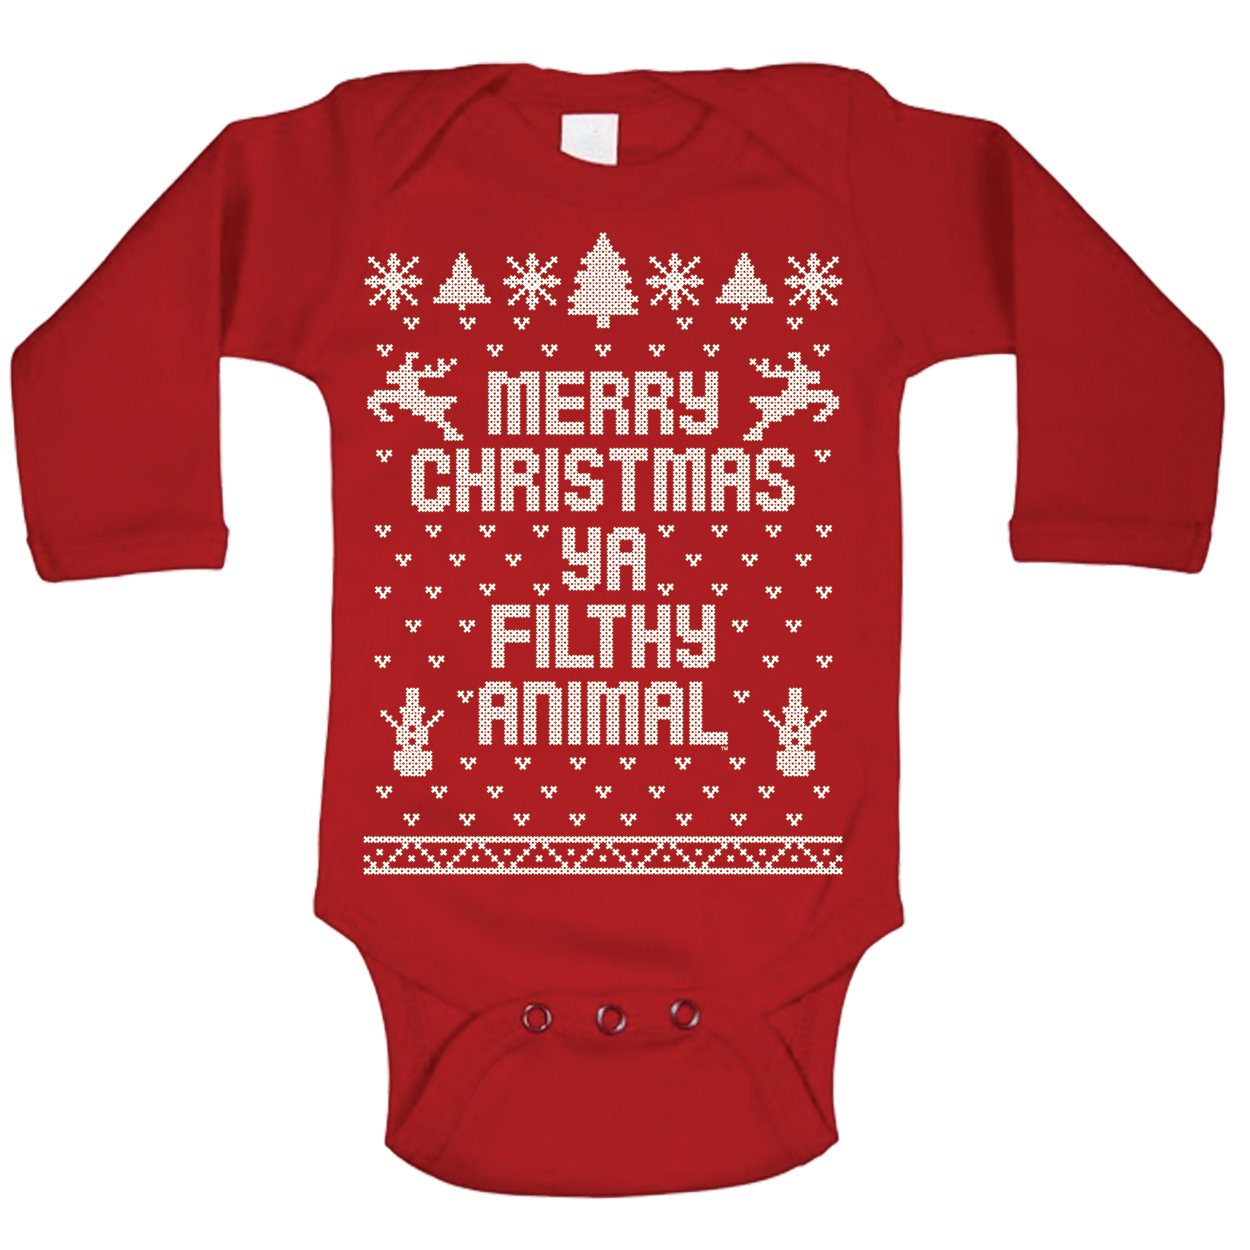 Merry Christmas Ya Filthy Animal Ugly Christmas Sweater Contest Party Xmas Baby Long Sleeve One Piece (18 Months, Red)